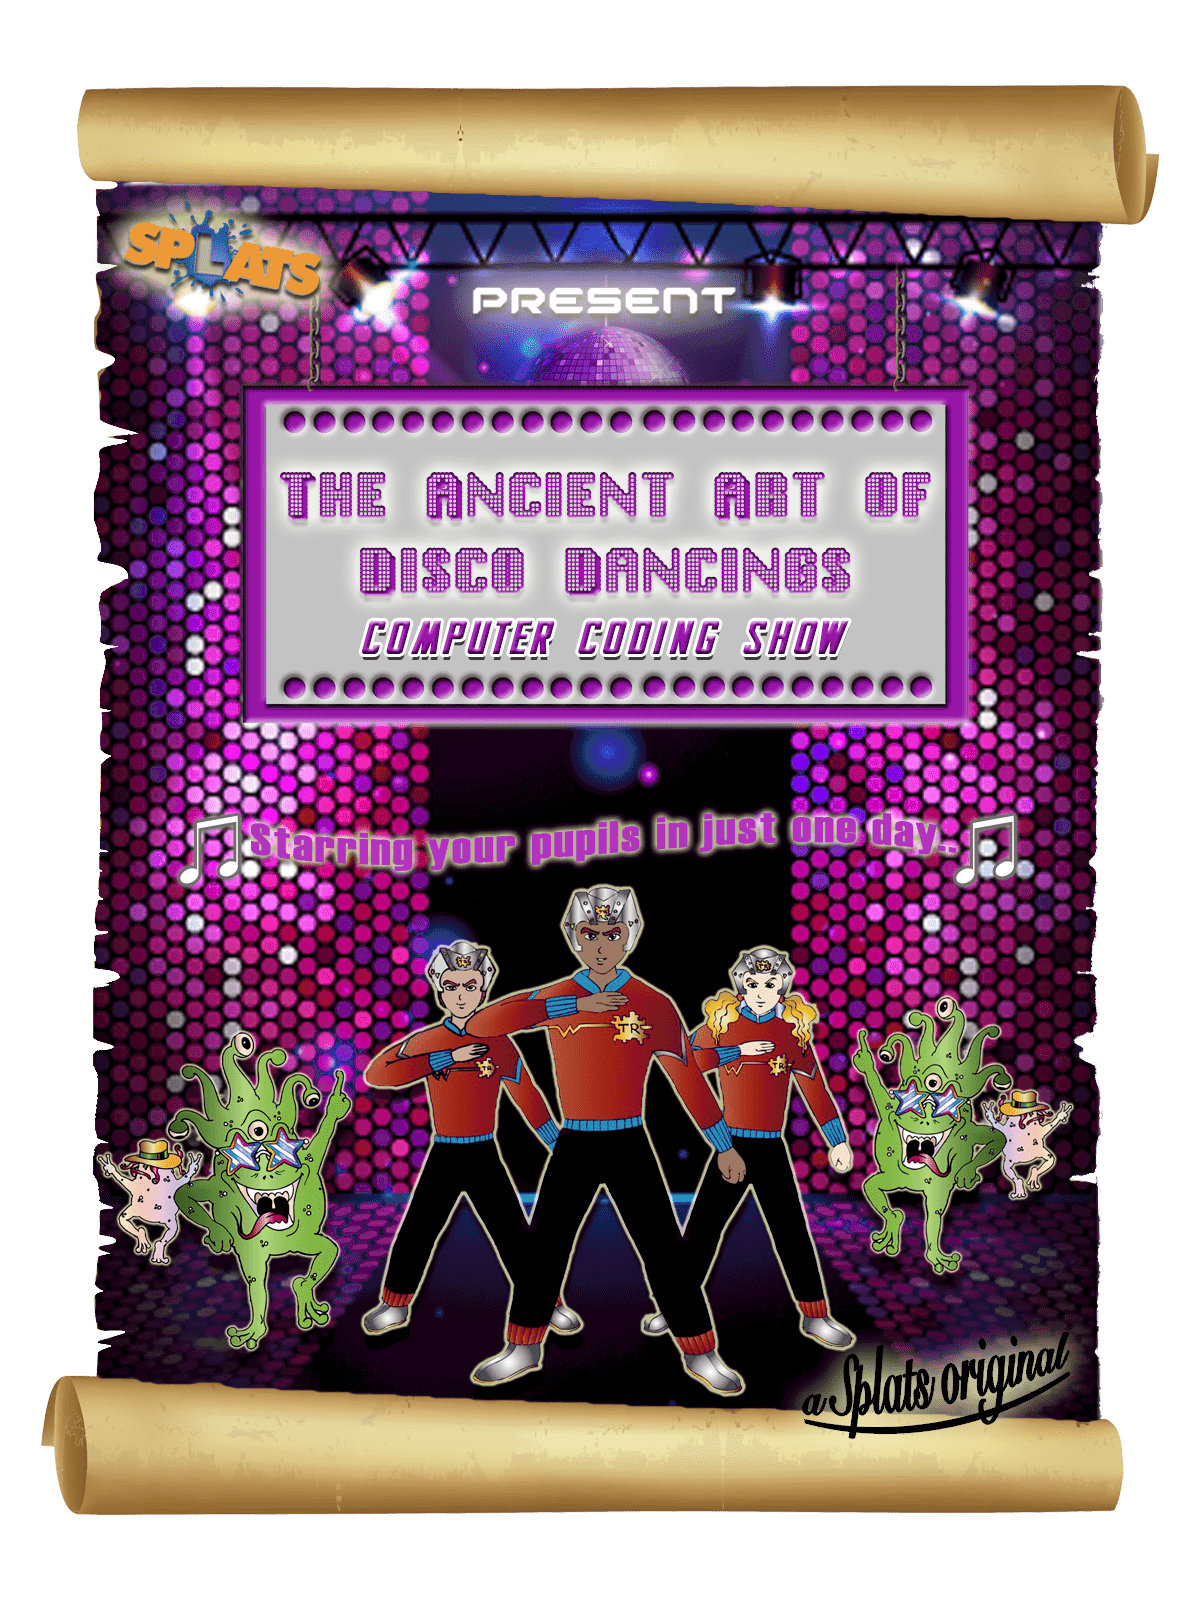 Splats Team Robot and The Ancient Art of Disco Dancing poster